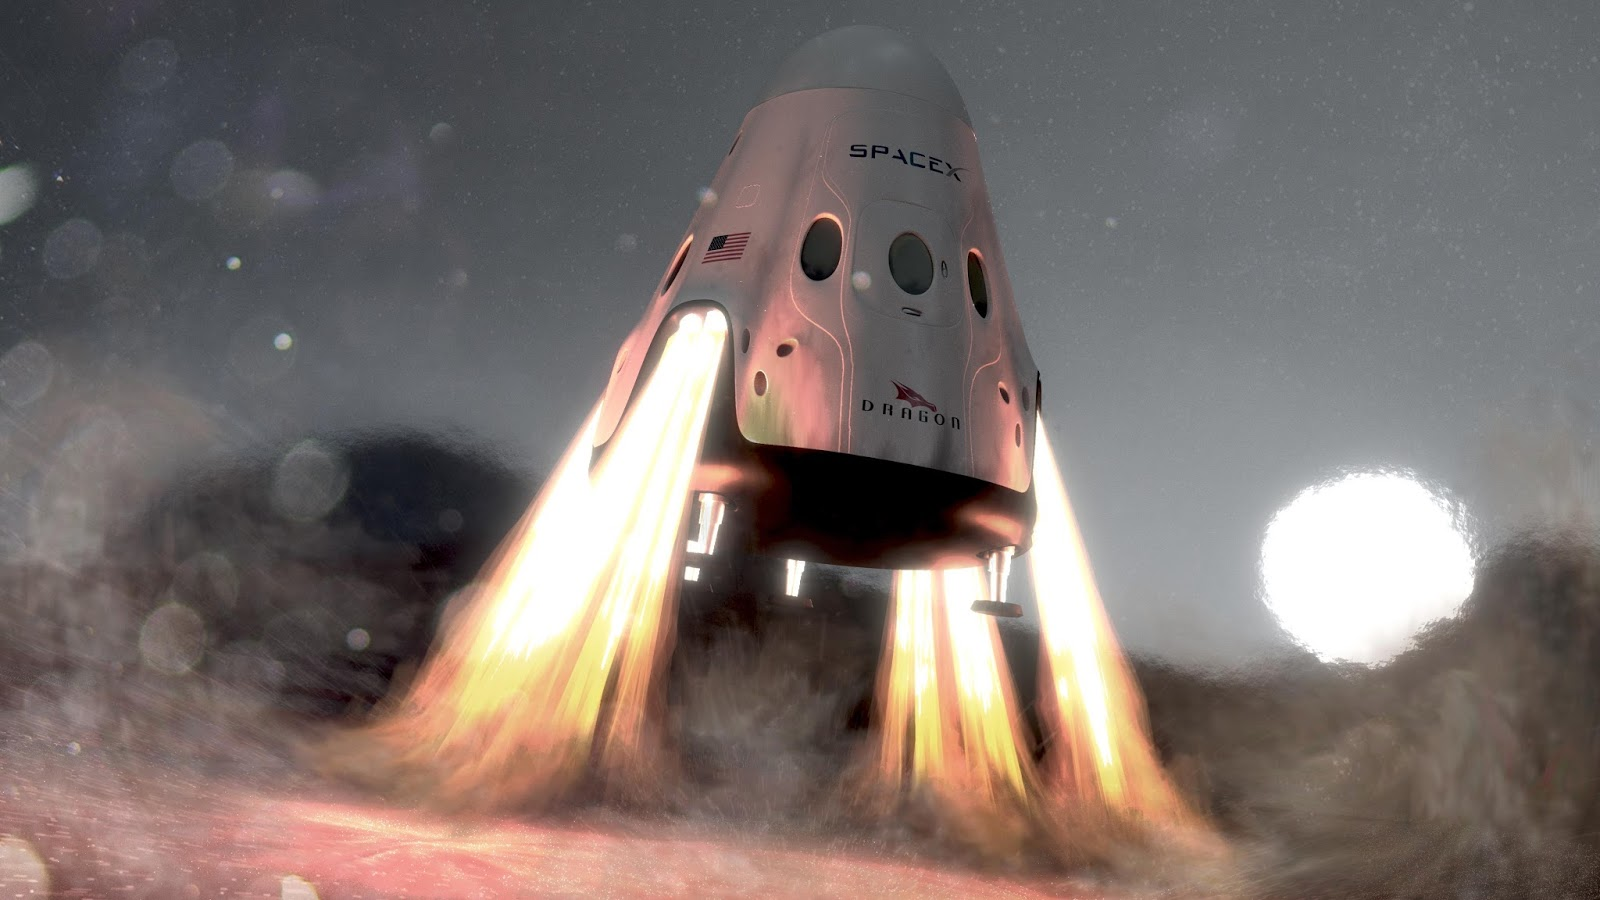 SpaceX Red Dragon landing on Mars by Chris Monson